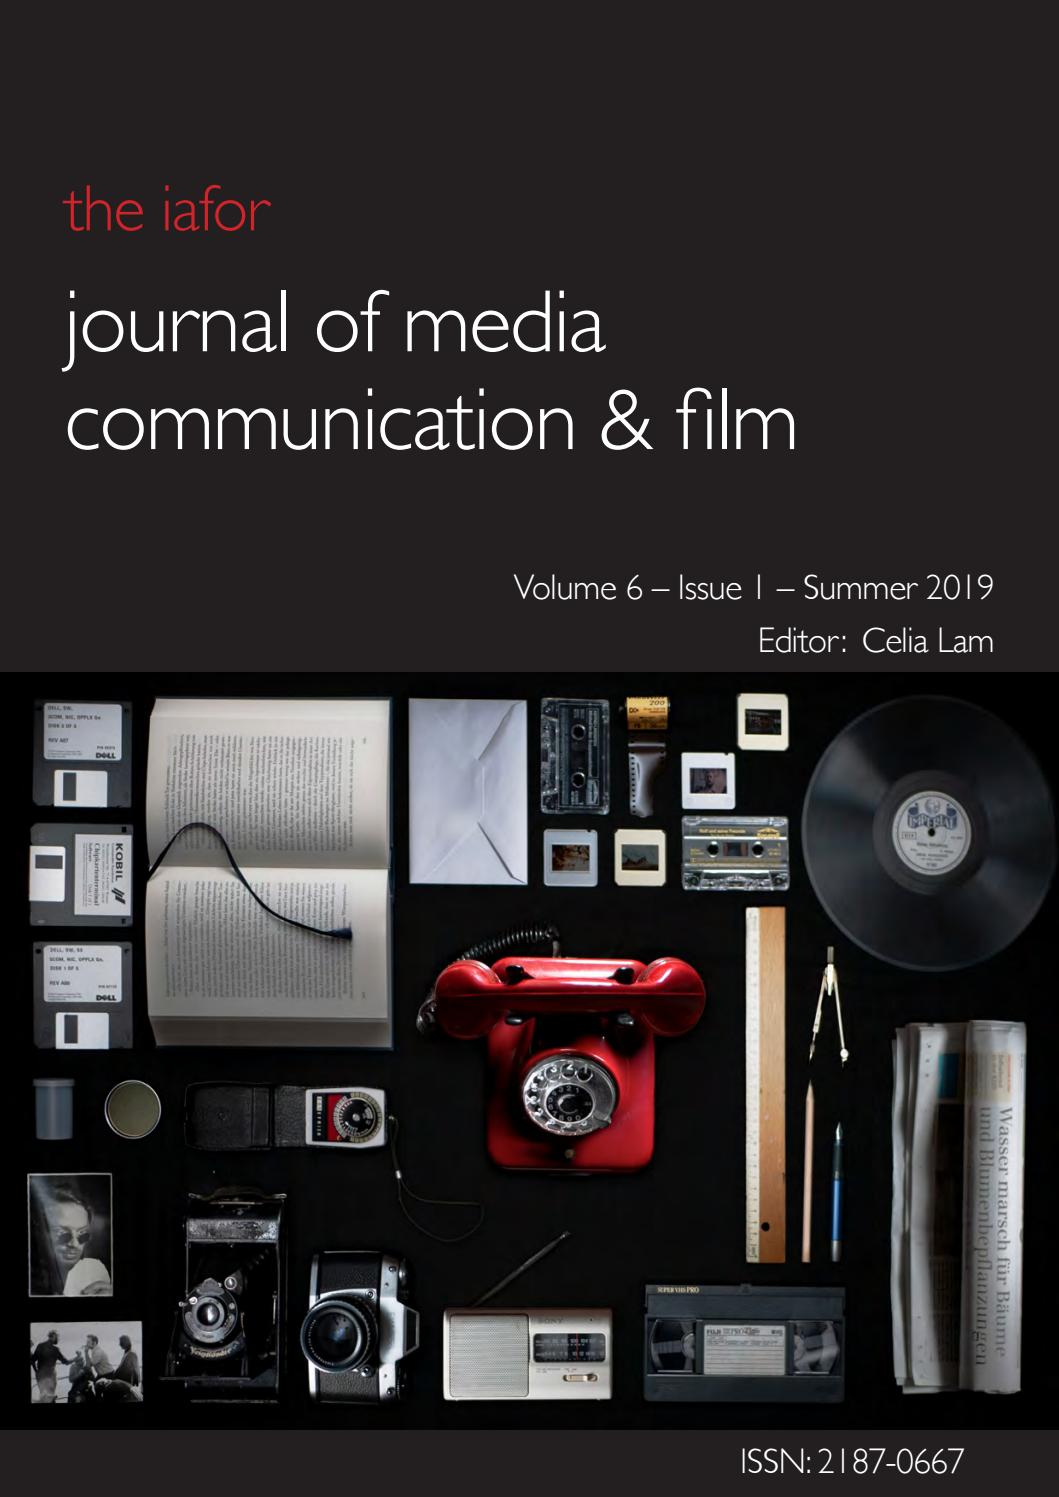 Iafor Journal Of Media Communication Film Volume 6 Issue 1 Summer 2019 By Iafor Issuu